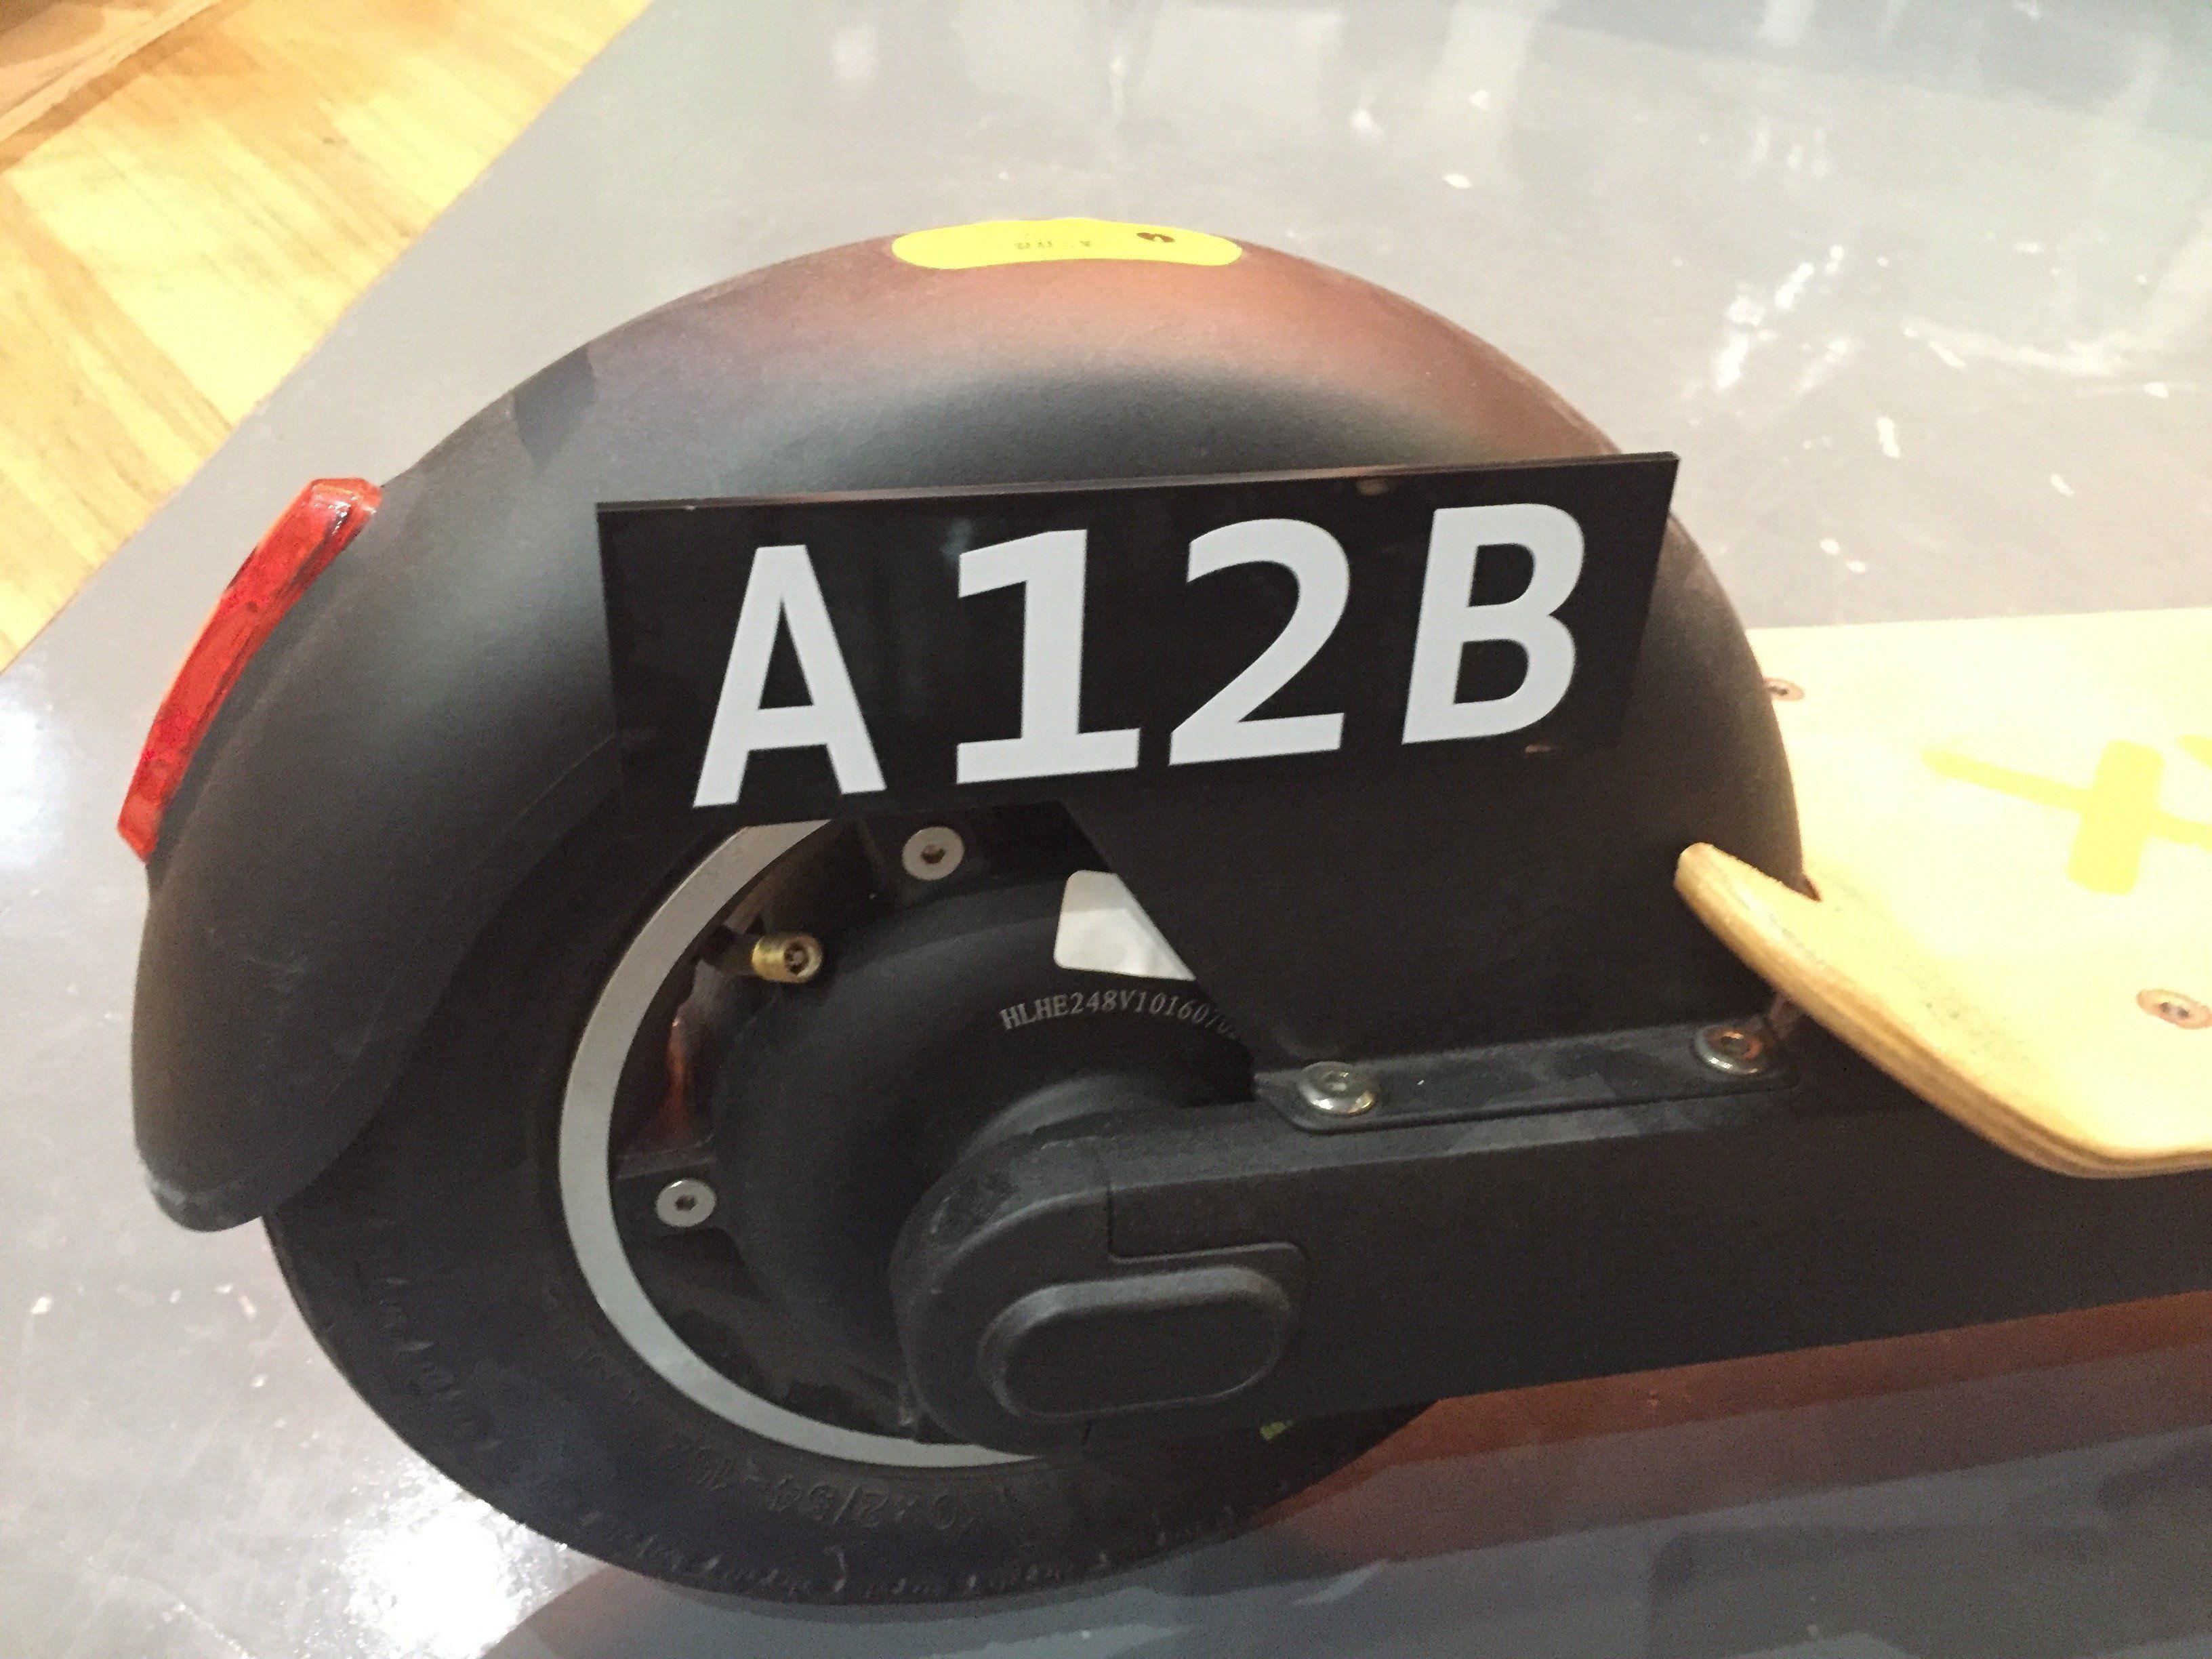 Customised Plate for E-Scooters and E-Bikes